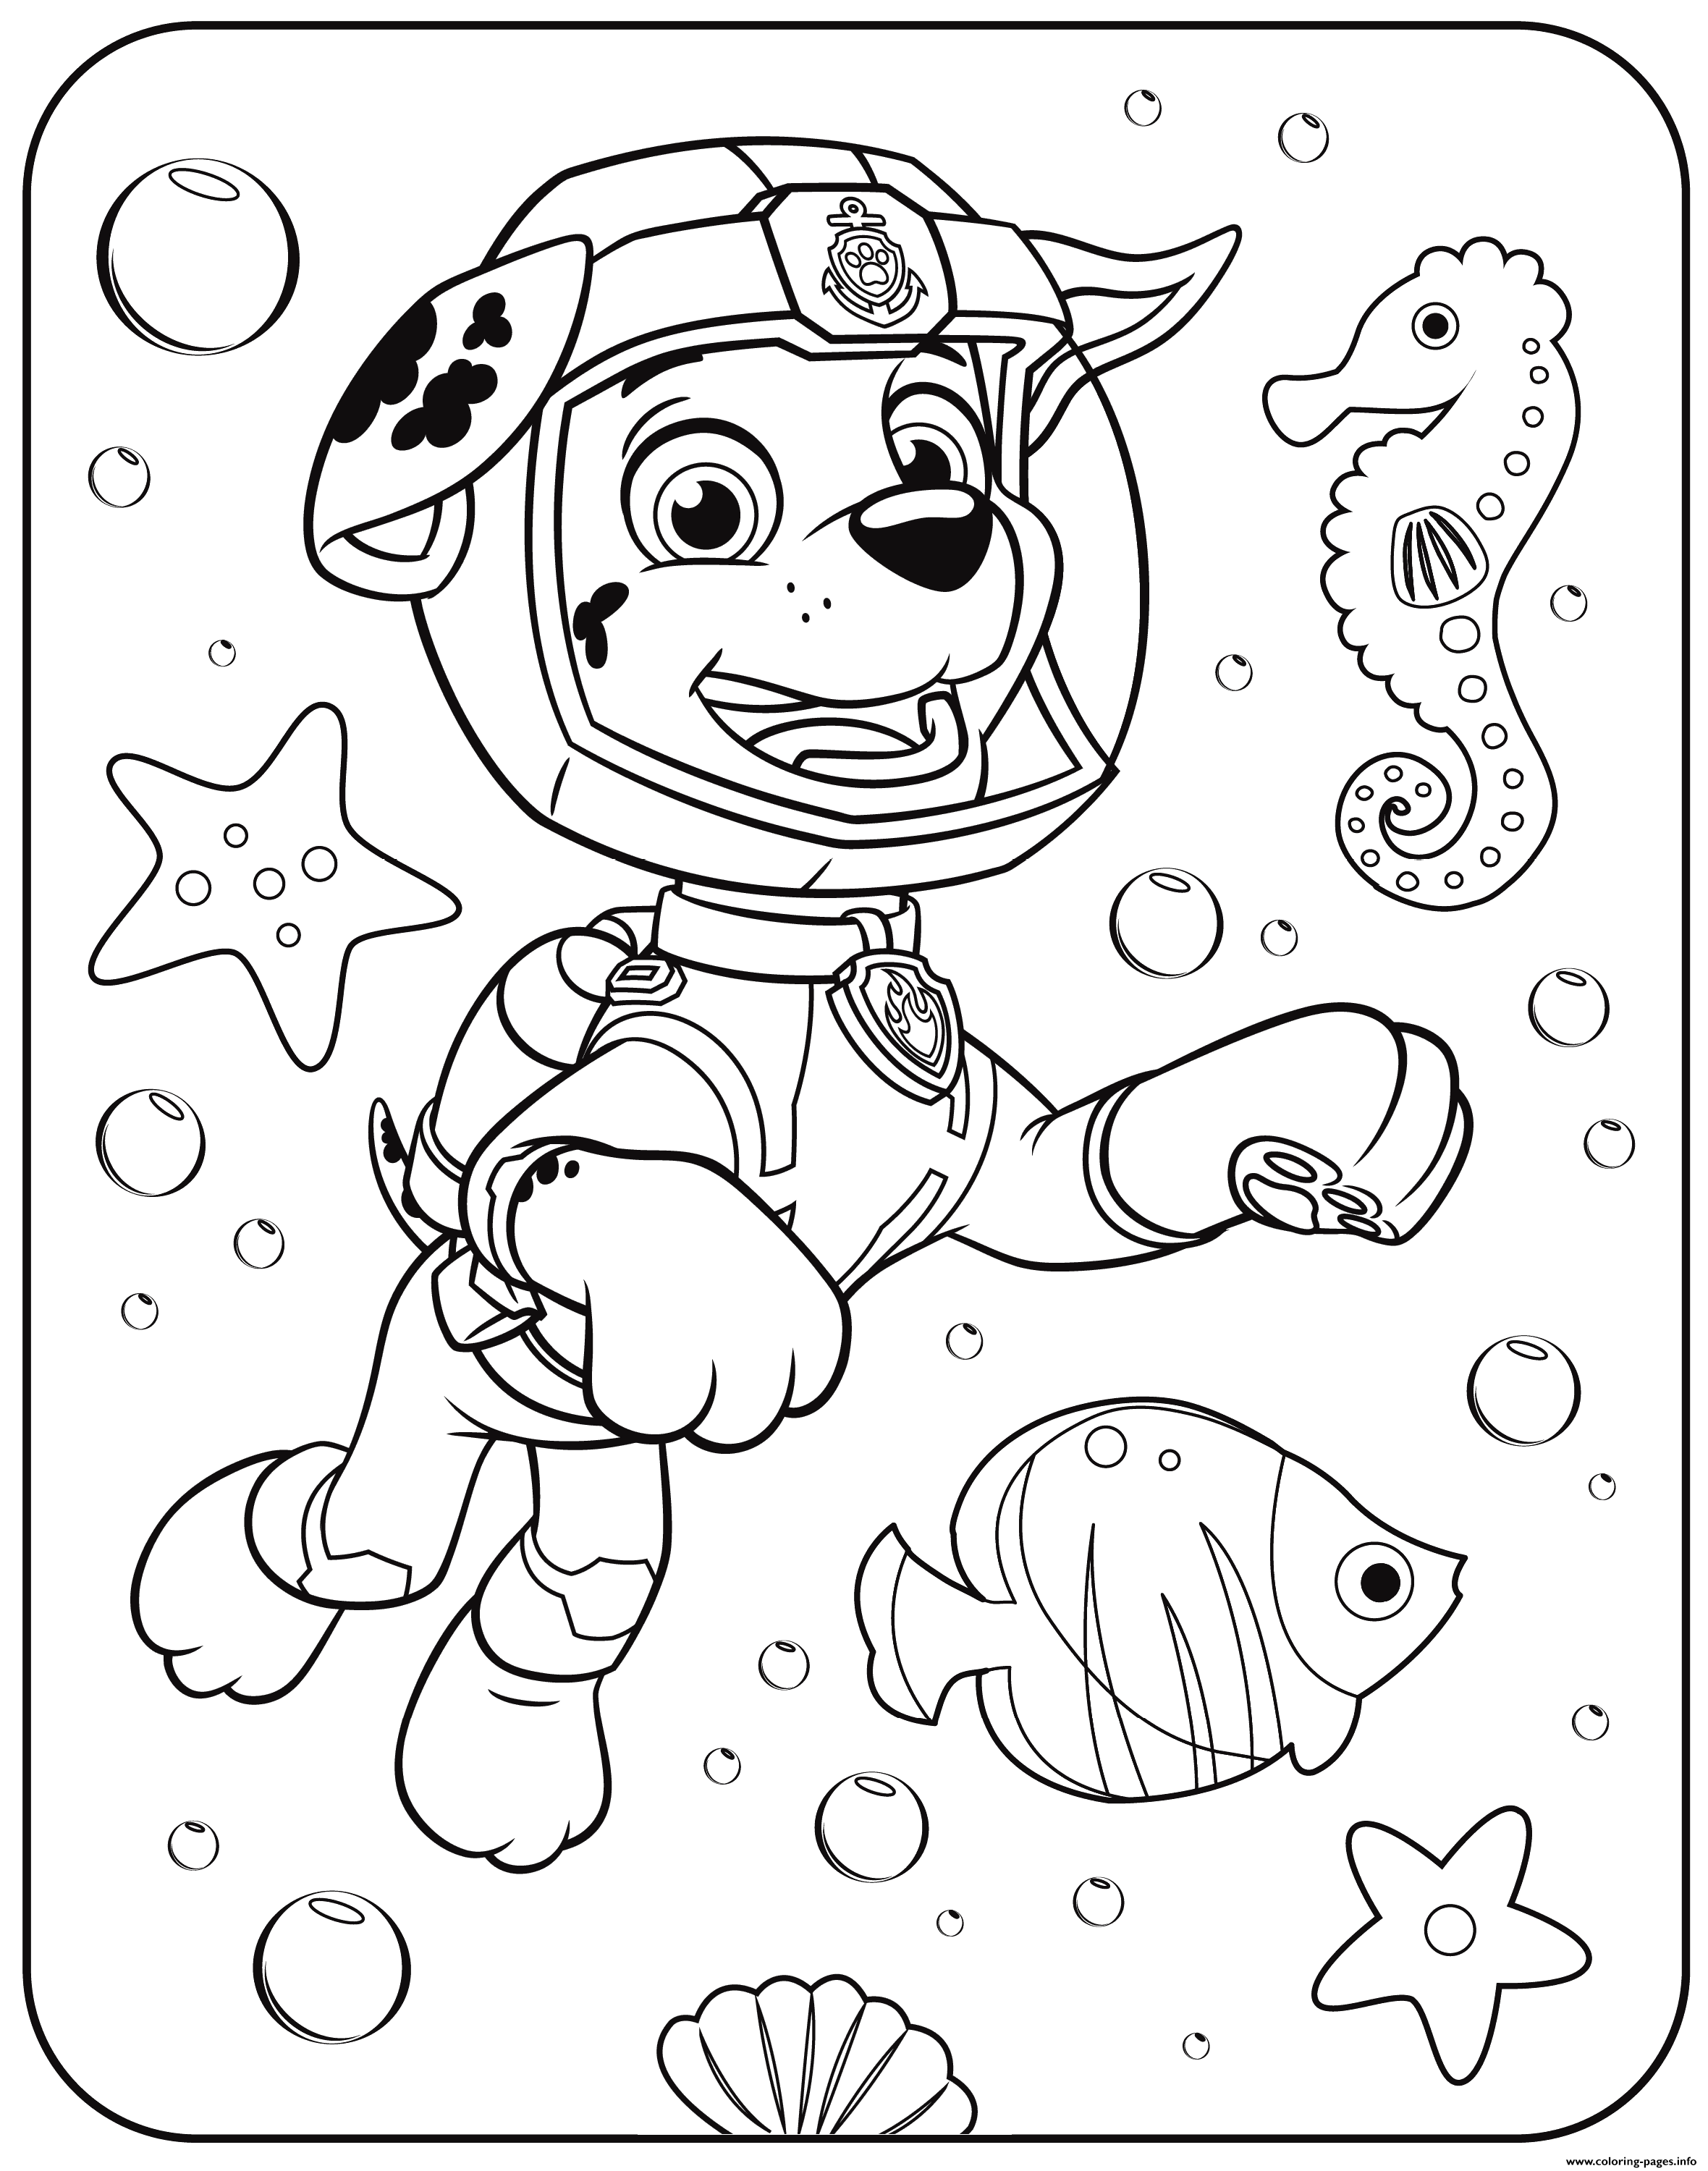 PAW Patrol Marshall Underwater coloring pages